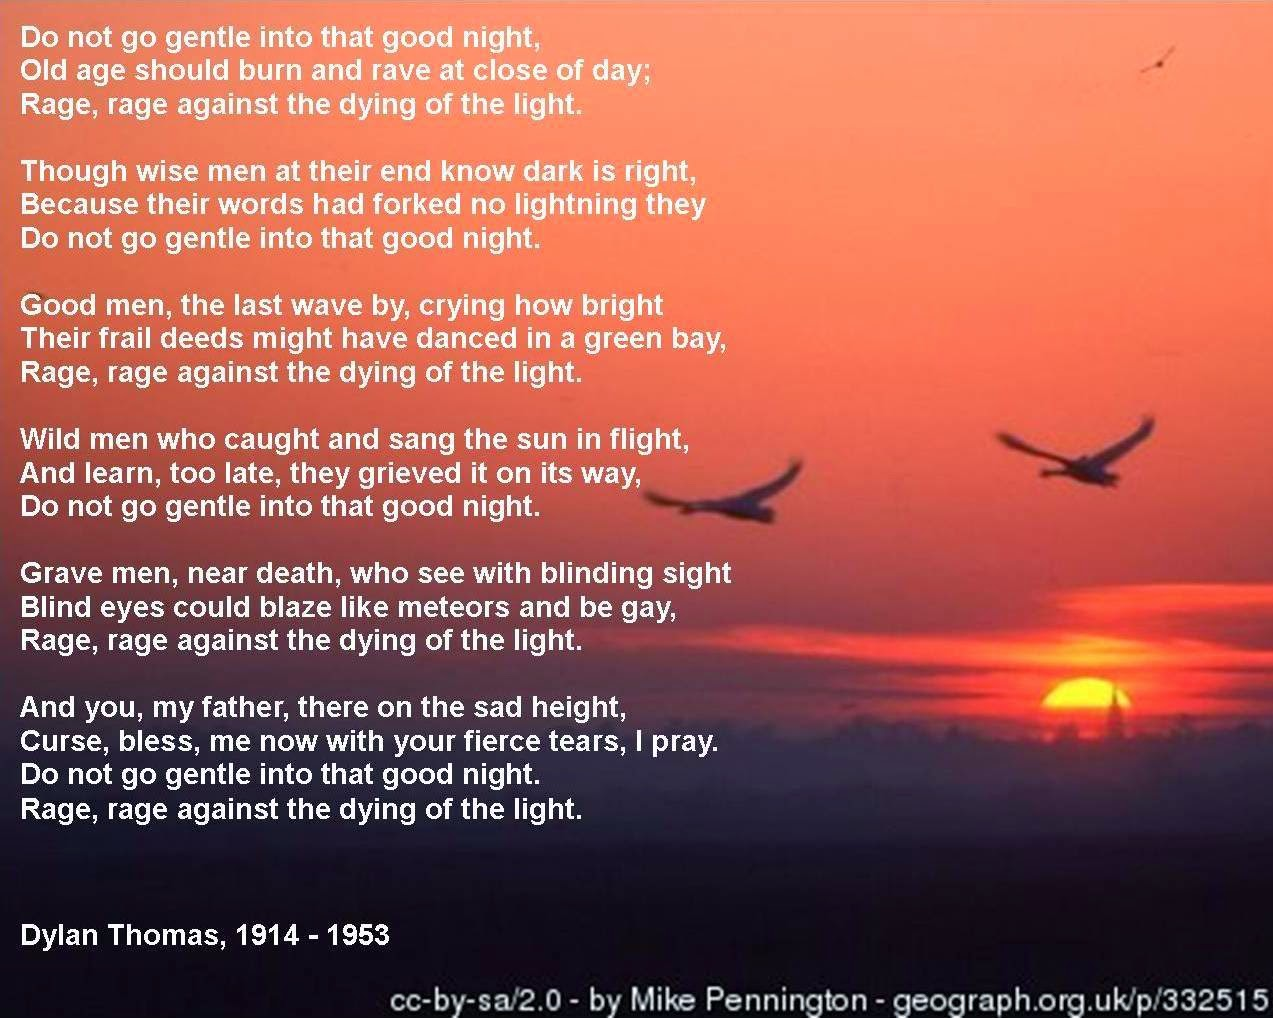 a review of dylan thomas poem do not go gentle into that good night A reading of do not go gentle into that good night by dylan thomas the poem in full: do not go gentle into that good.